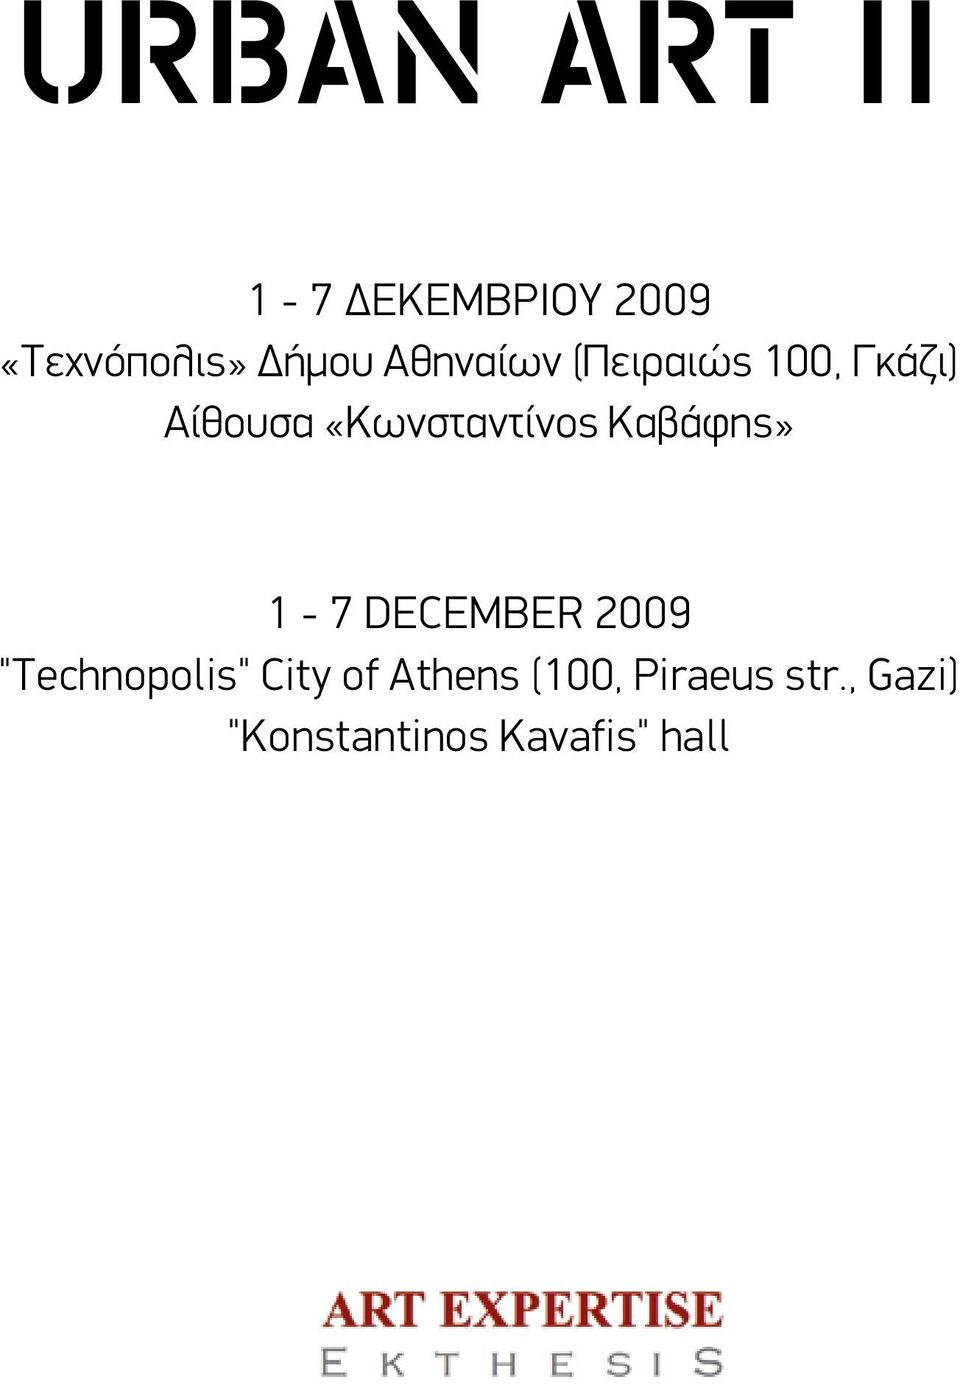 "Kαβάφης» 1-7 DECEMBER 2009 ""Technopolis"" City of"